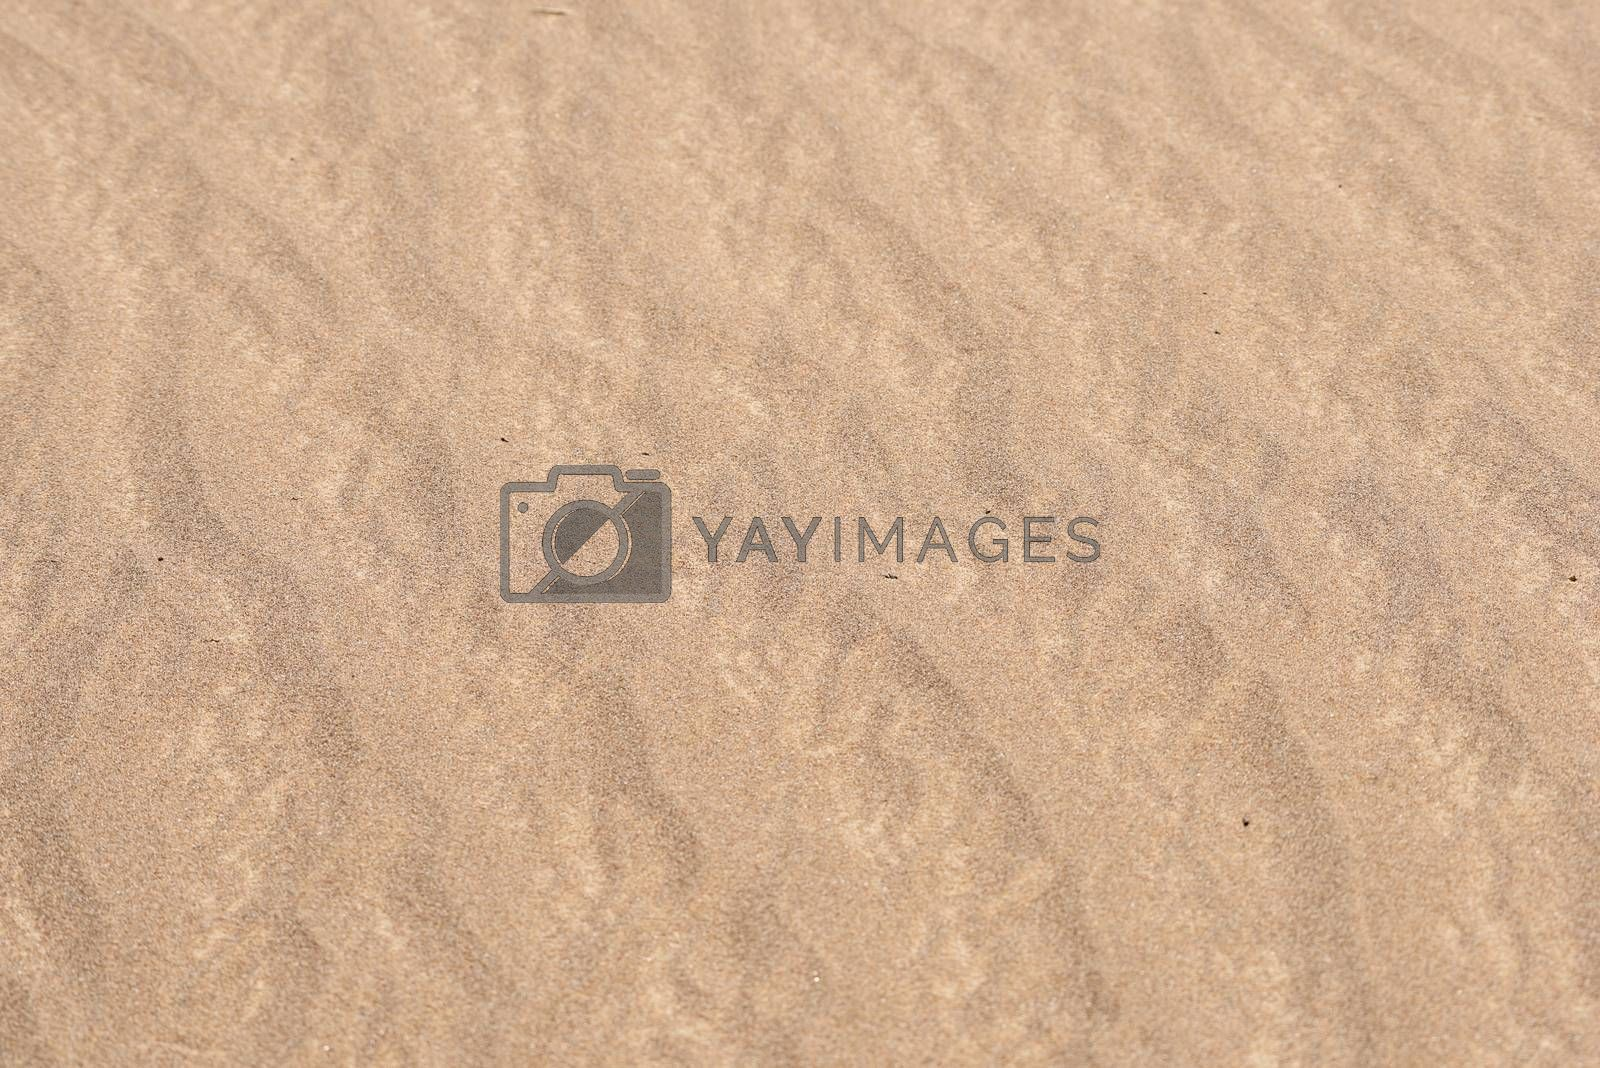 Real Desert sand texture and pattern for background or presentation